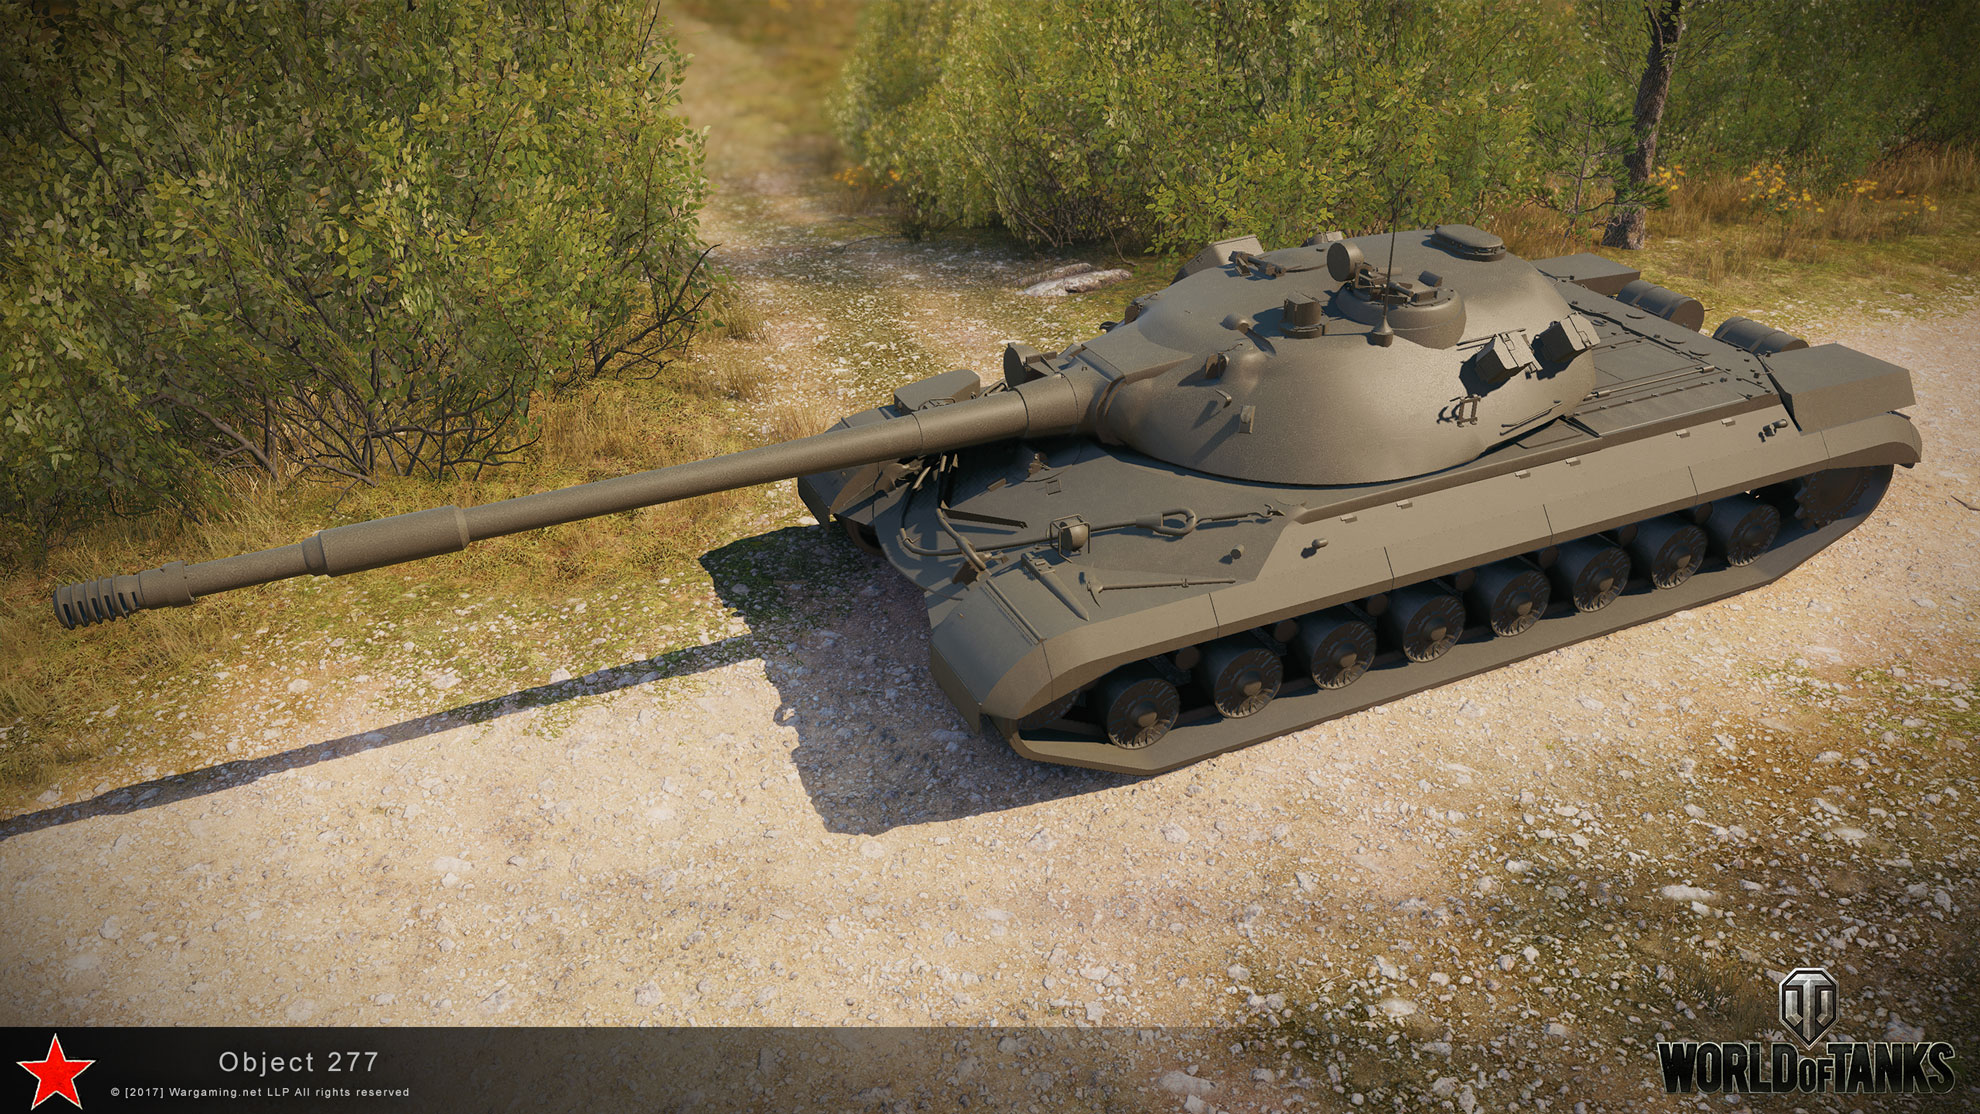 world of tanks: new soviet tier x tanks revealed!